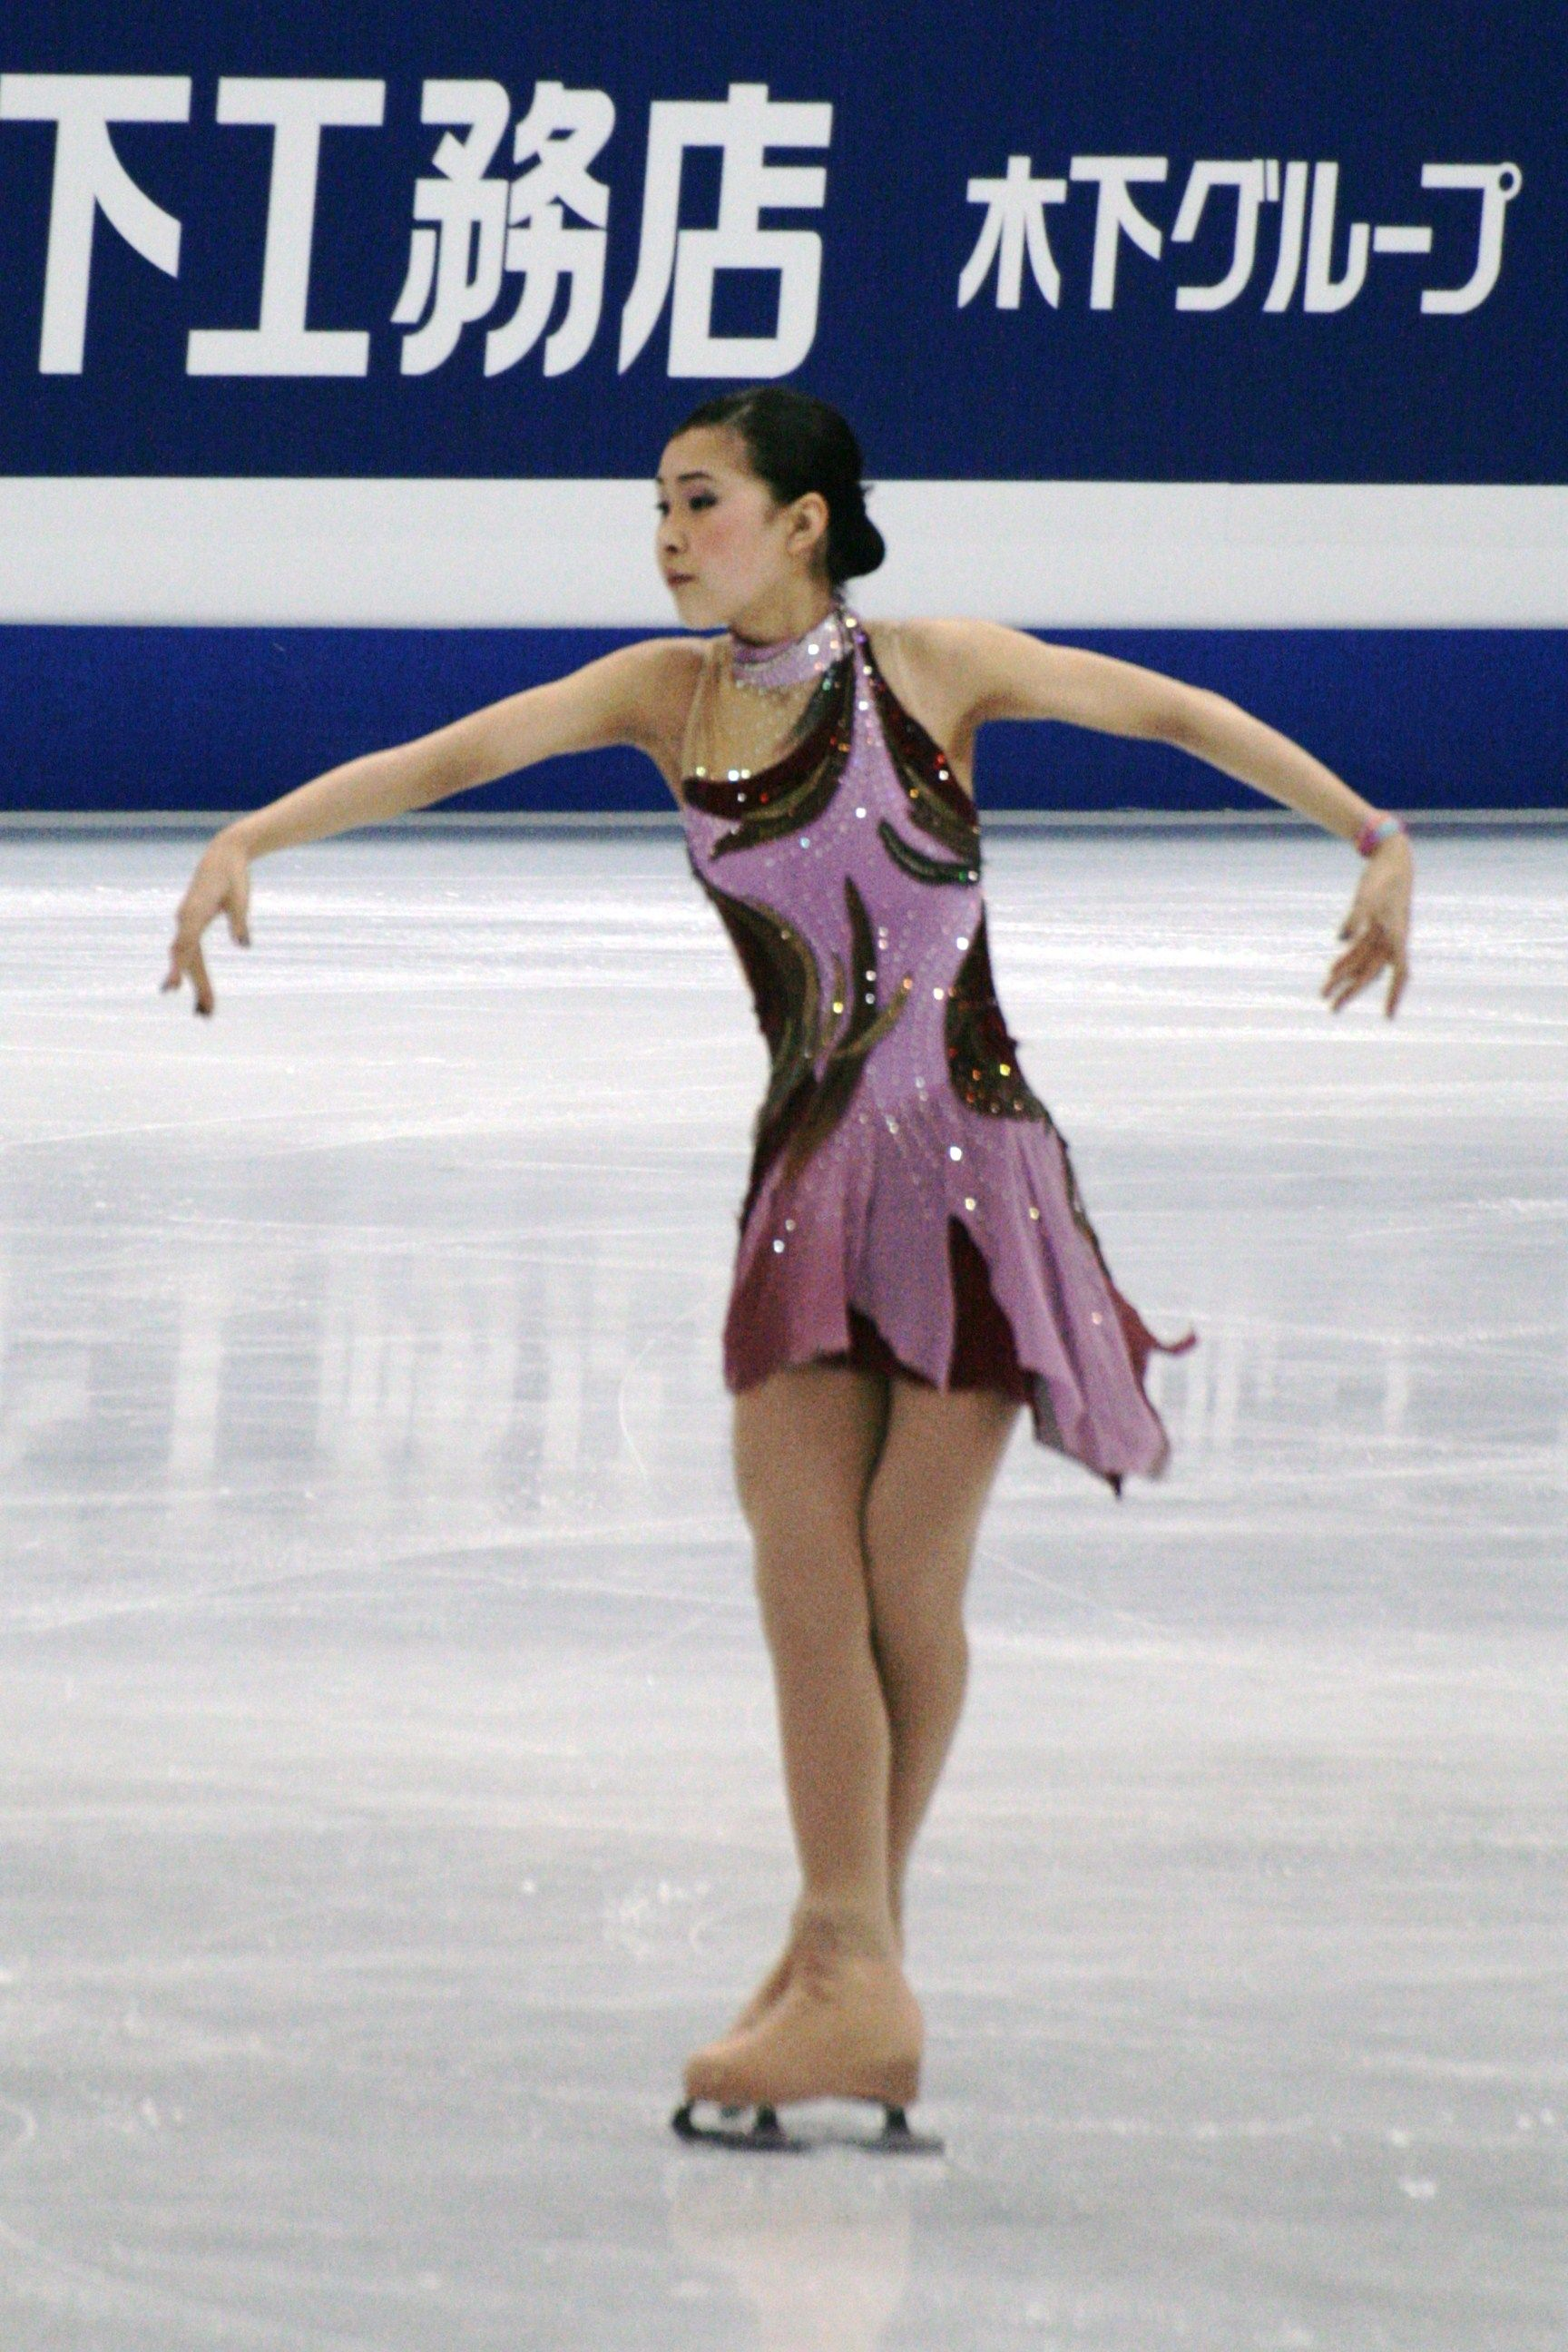 Kanako Murakami -  Purple Figure Skating / Ice Skating dress inspiration for Sk8 Gr8 Designs.